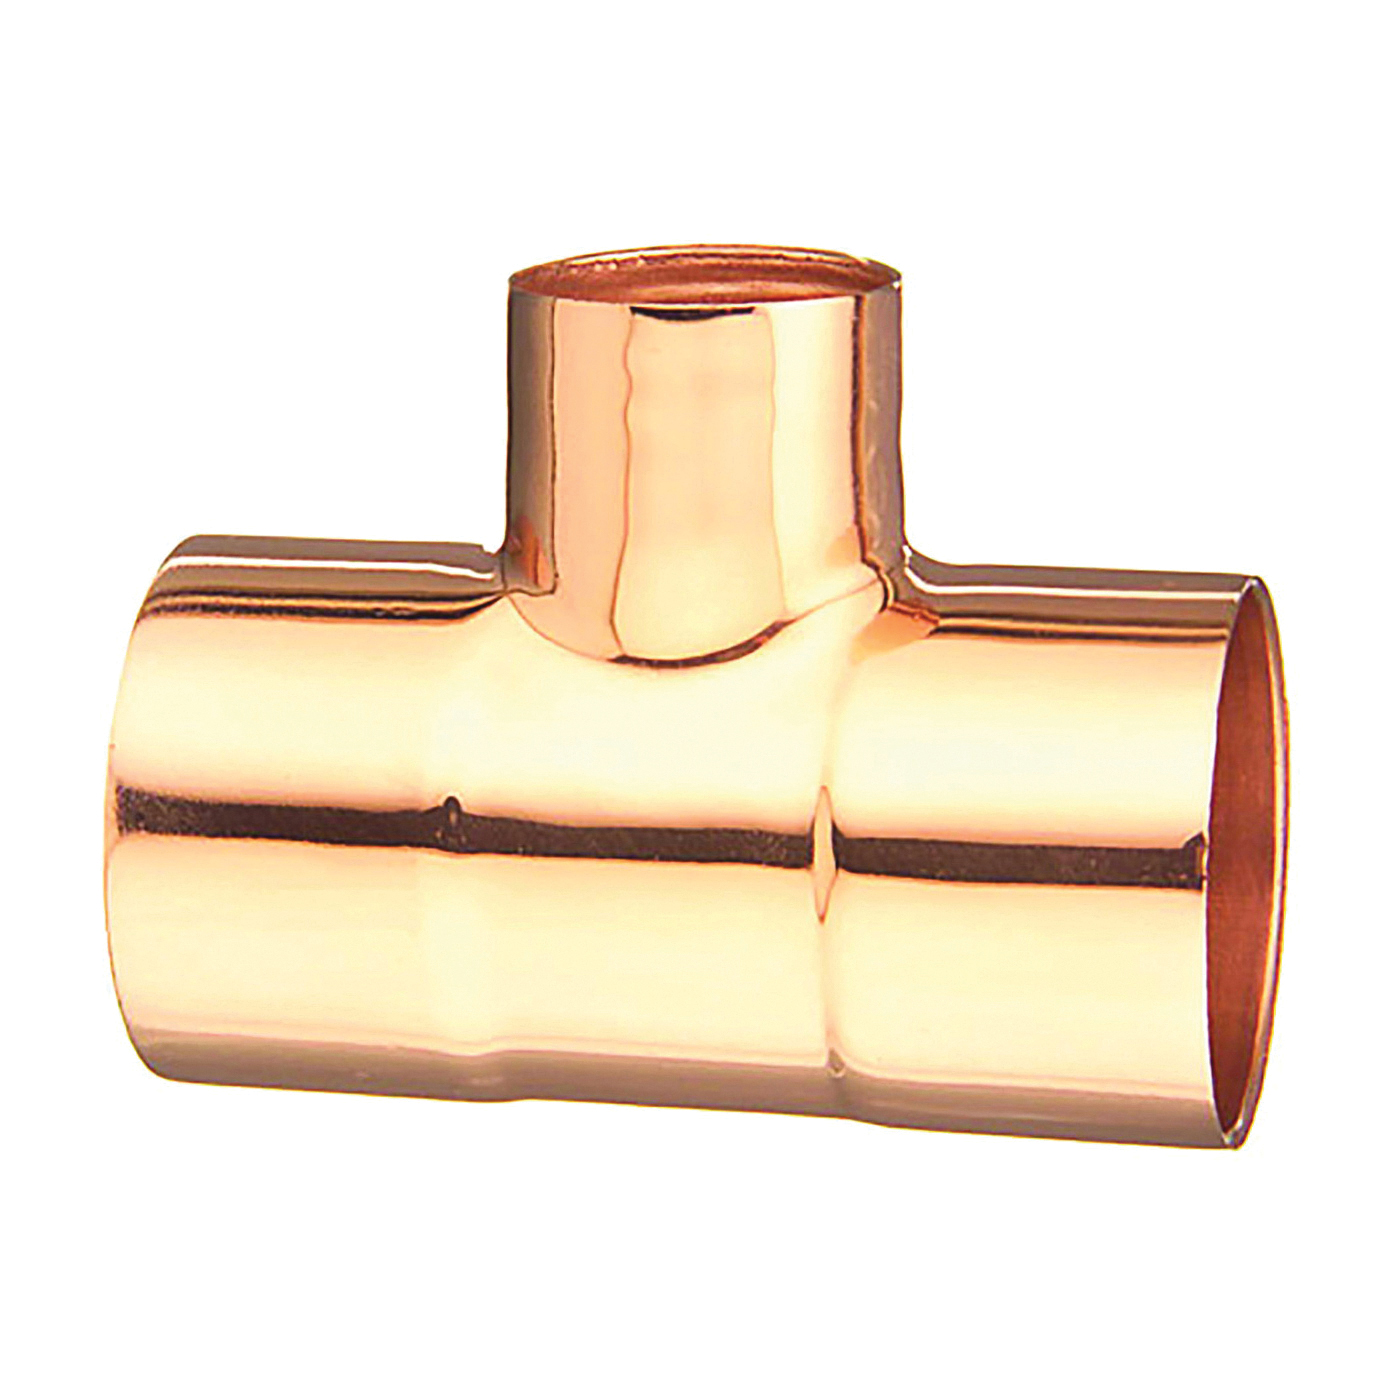 Picture of EPC 111R Series 32874 Pipe Reducing Tee, 1-1/4 x 1-1/4 x 3/4 in, Sweat, Copper